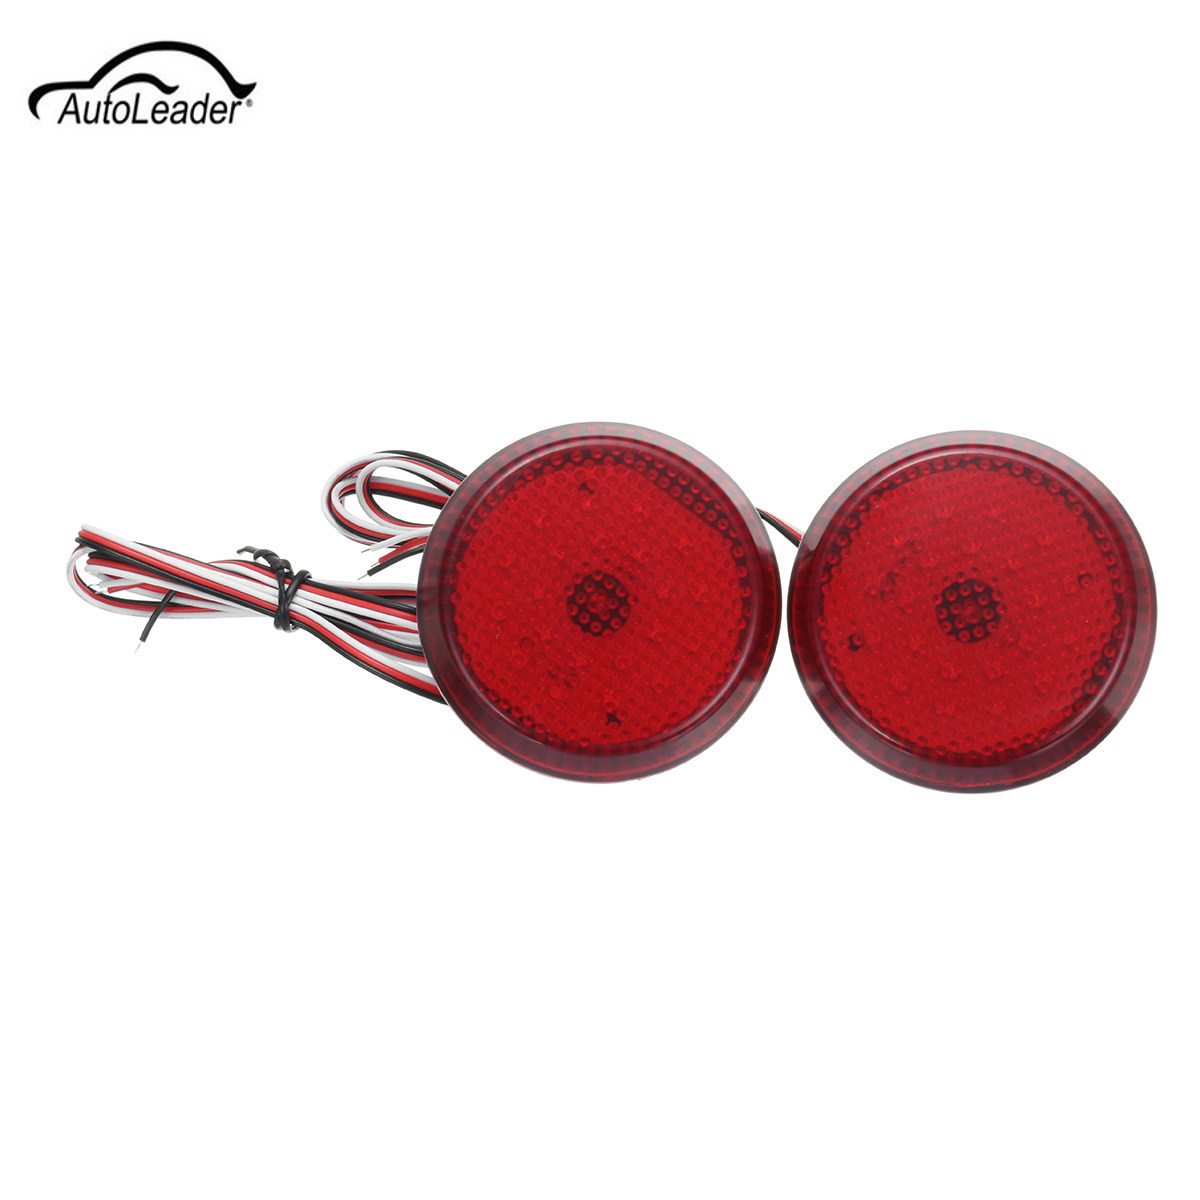 2pcs Car LED Red Rear Bumper Reflector Brake Stop Light For Toyota/Sienna/Corolla For Scion xB iQ 2pcs led number license plate light 12v smd led lamp car styling for toyota corolla auris alphard sienna wish scion xb xd urban